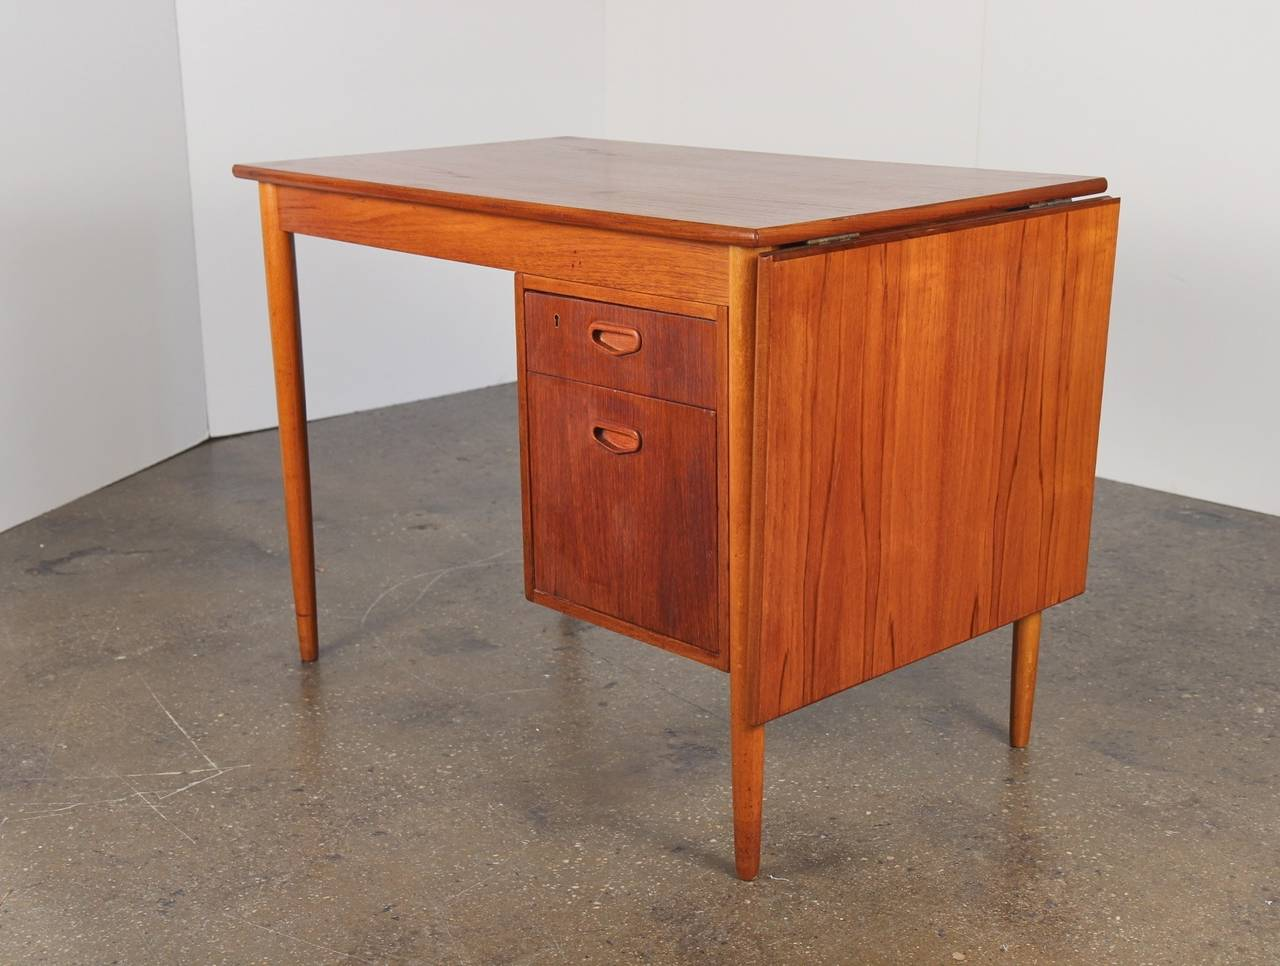 Modern Drop Leaf Tables Small Spaces Danish Modern Teak Drop Leaf Desk At 1stdibs